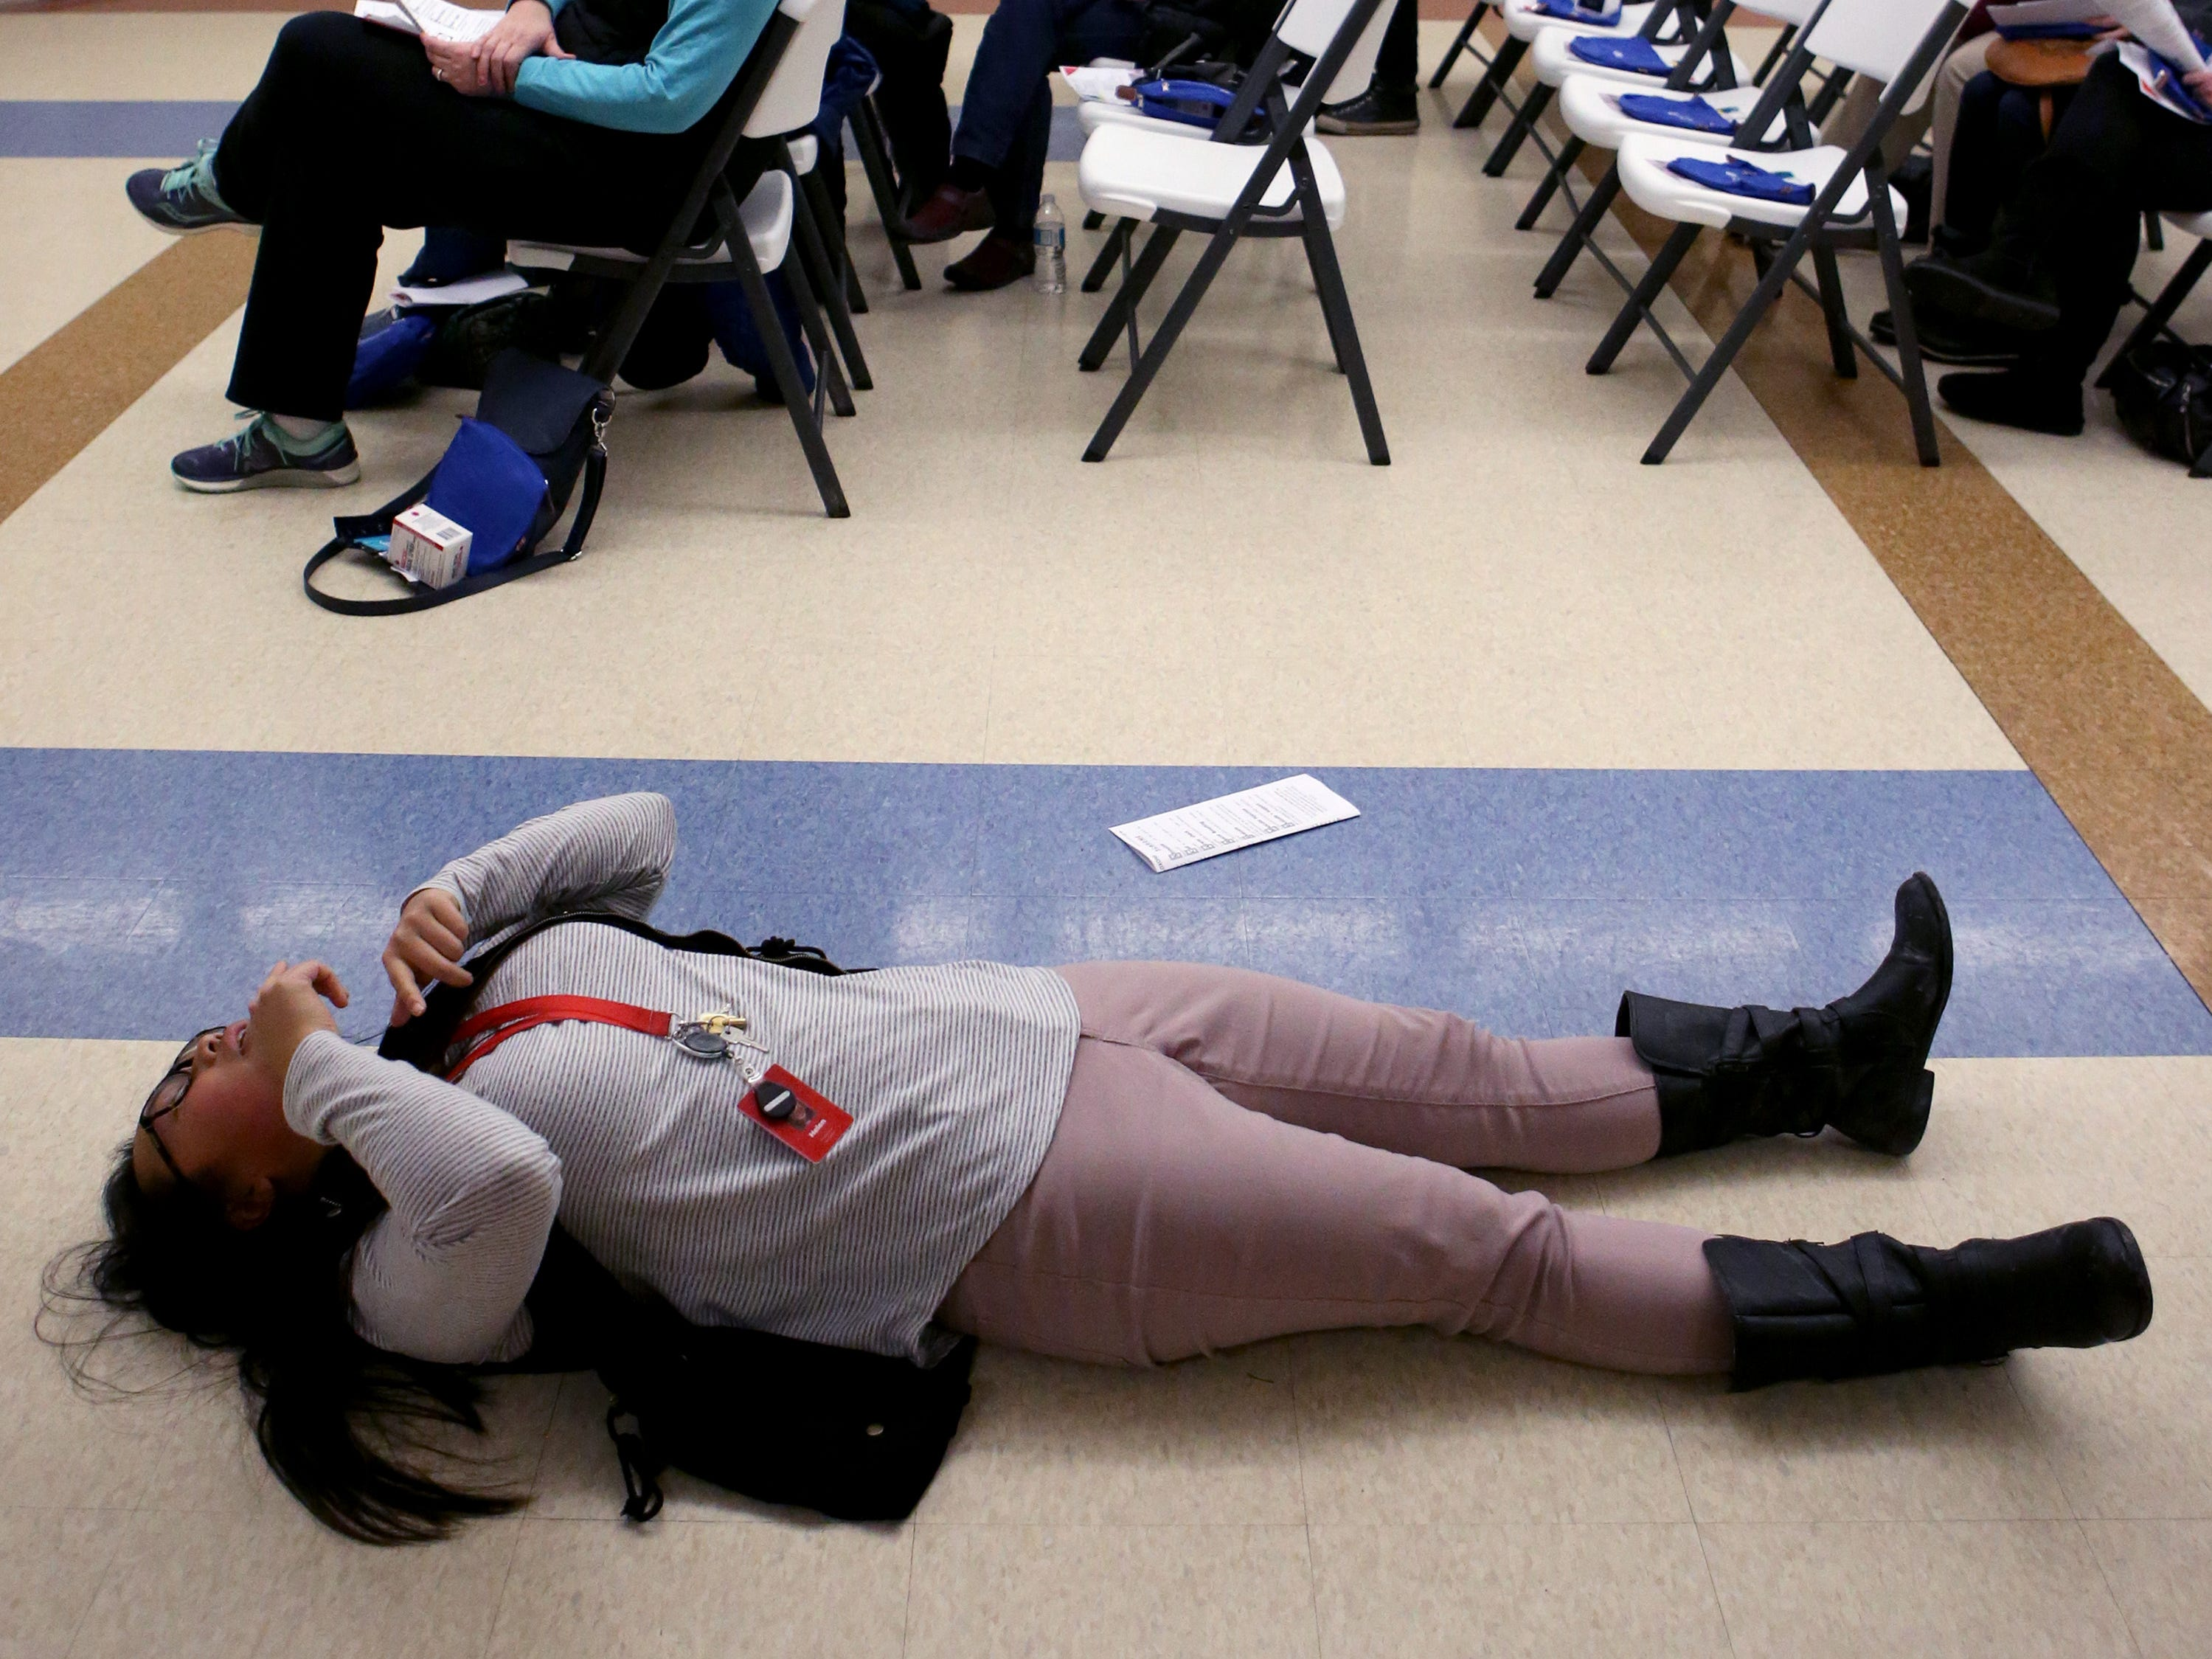 Helen Lai, a prevention specialist from the Aids Resource Center of Wisconsin, demonstrates making a victim flat and head tilted to administer nasal Narcan to counteract an opiate overdose during workshop at the Salvation Army's Greenfield facility on Jan. 24.